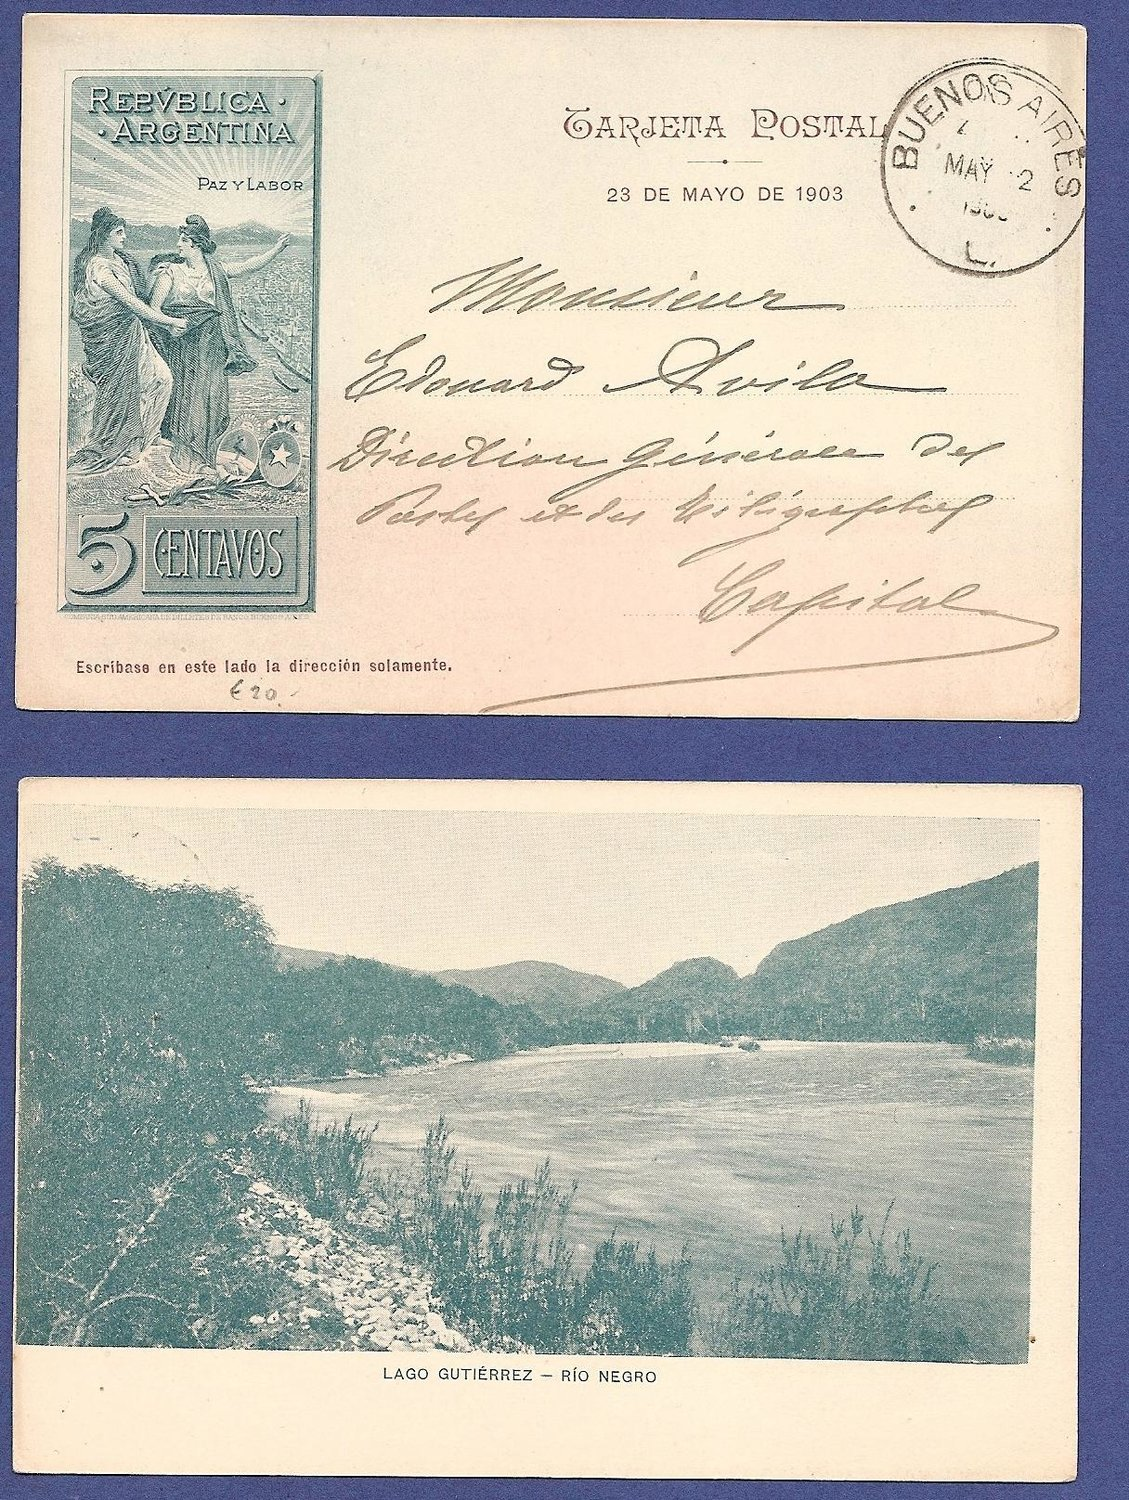 ARGENTINA illustrated postal card 1903 Lago Gutiérrez